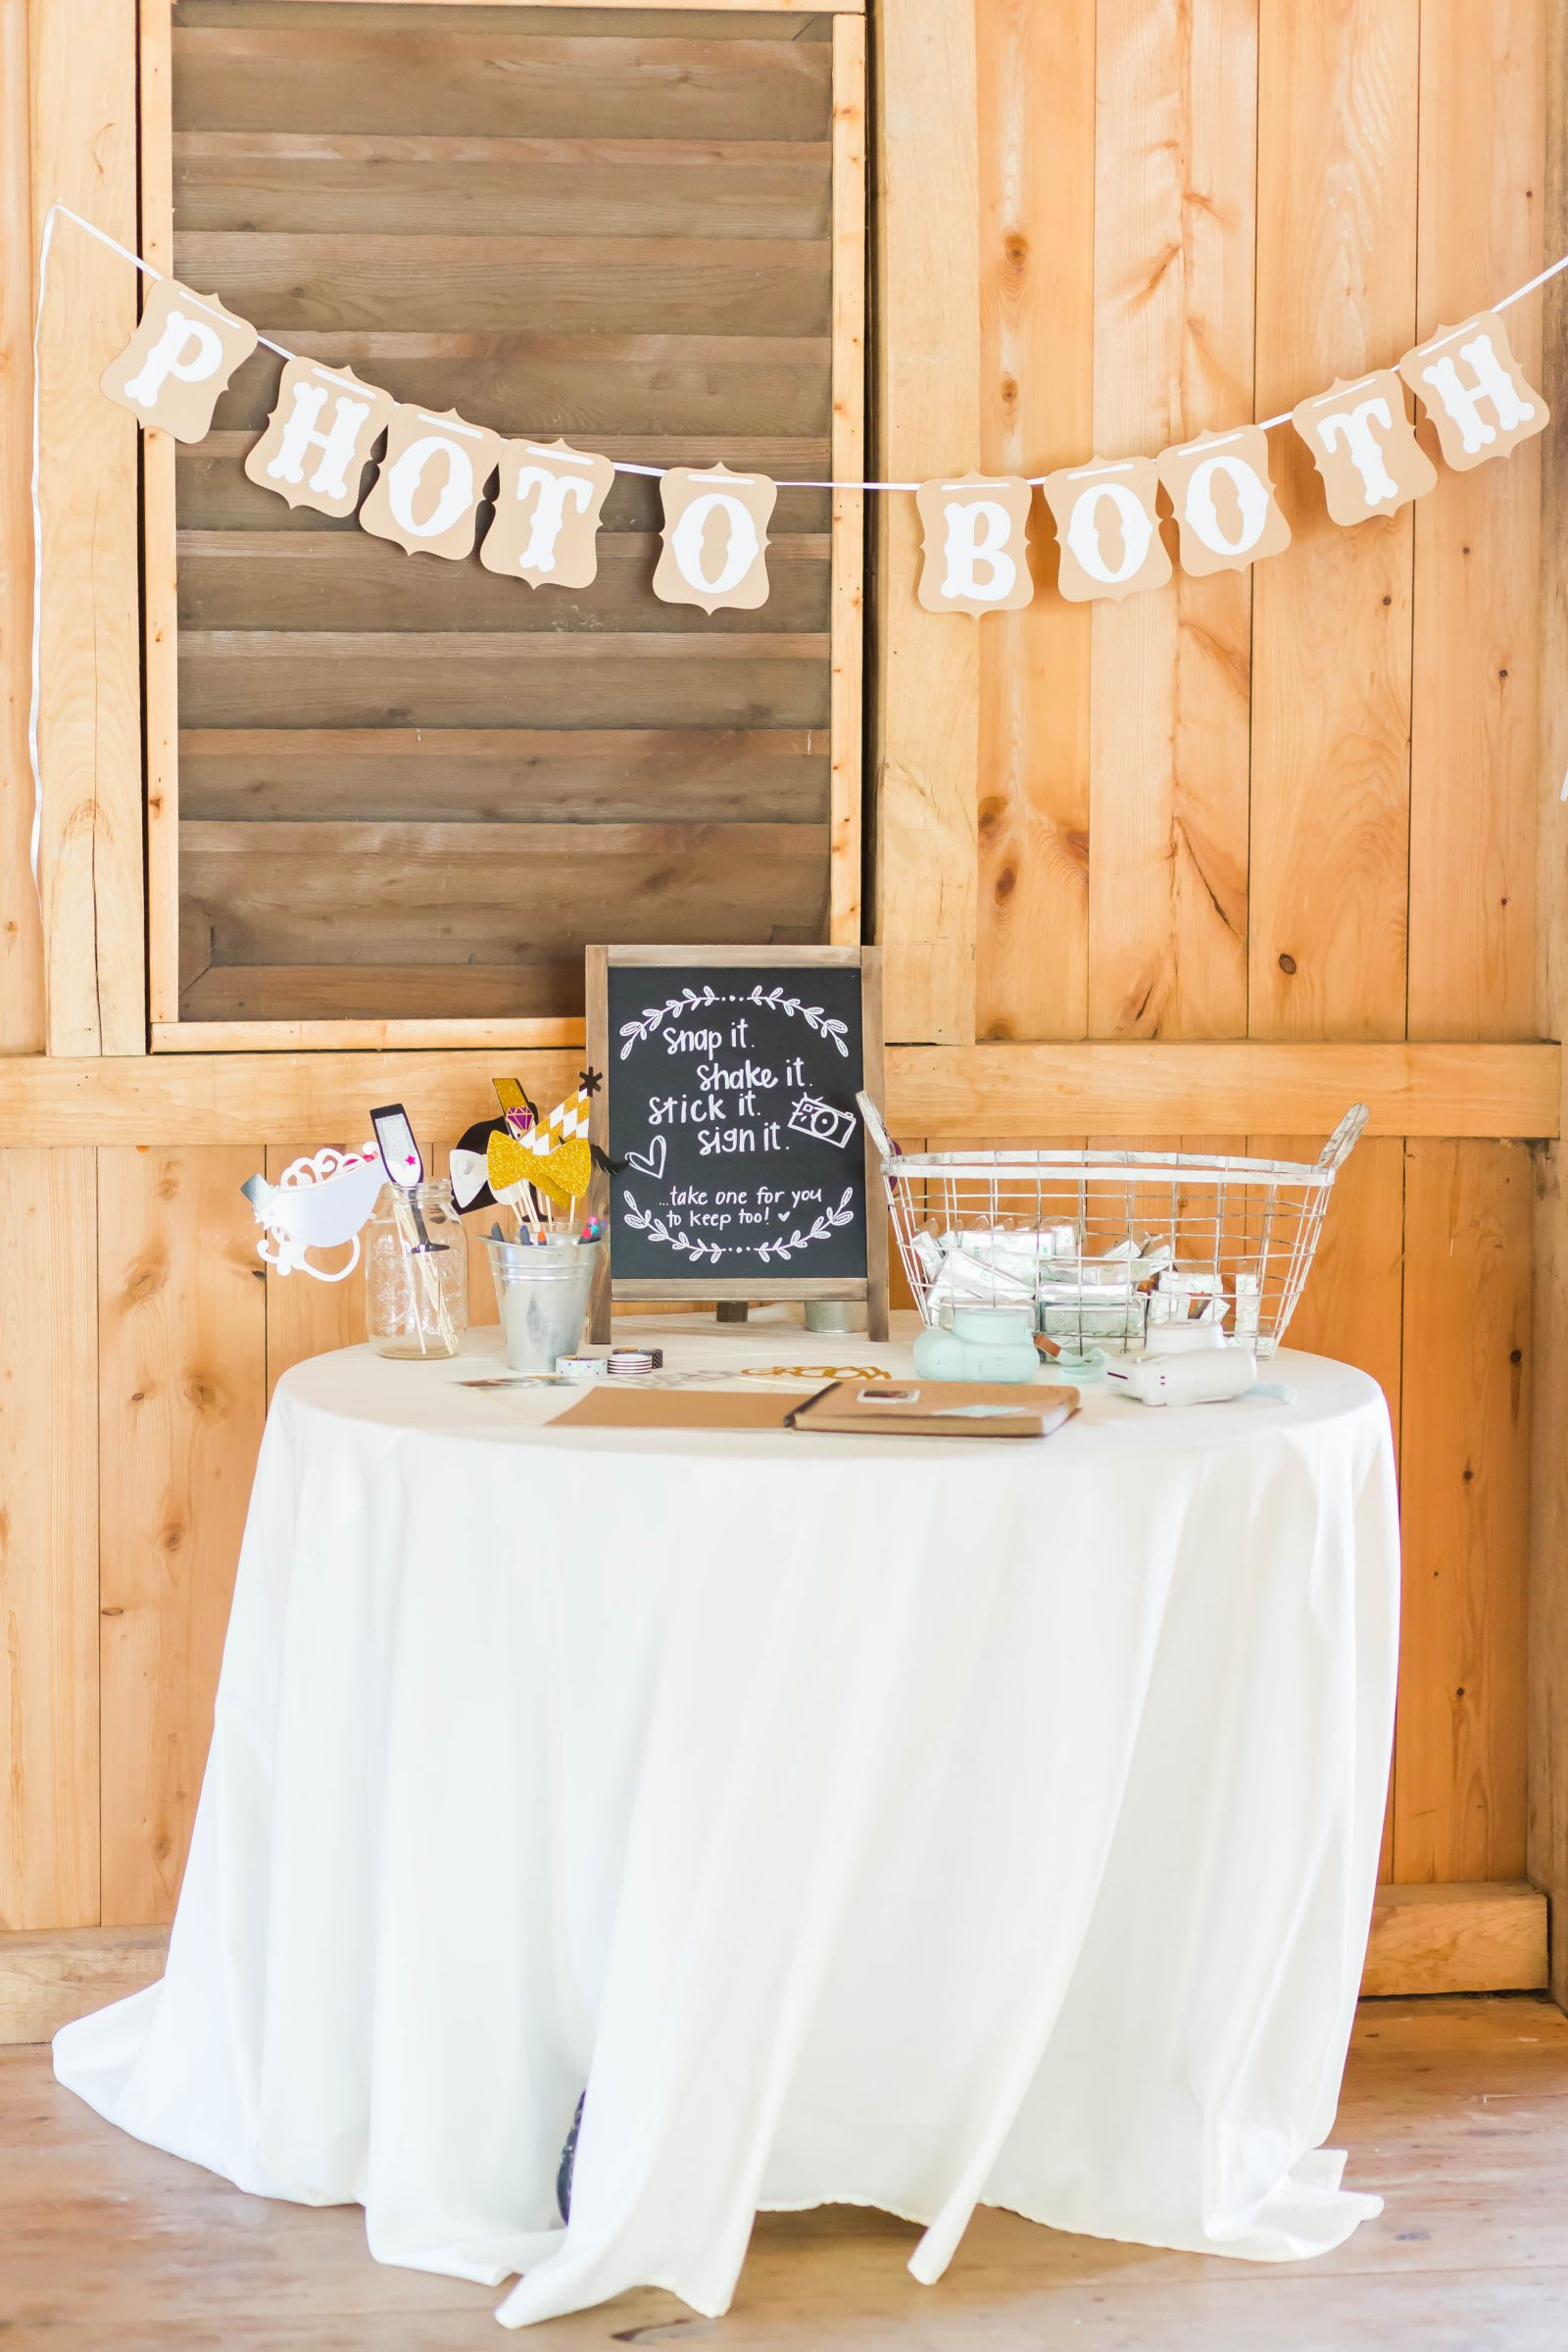 rivercrest-farm-summer-wedding-loren-jackson-photography-10